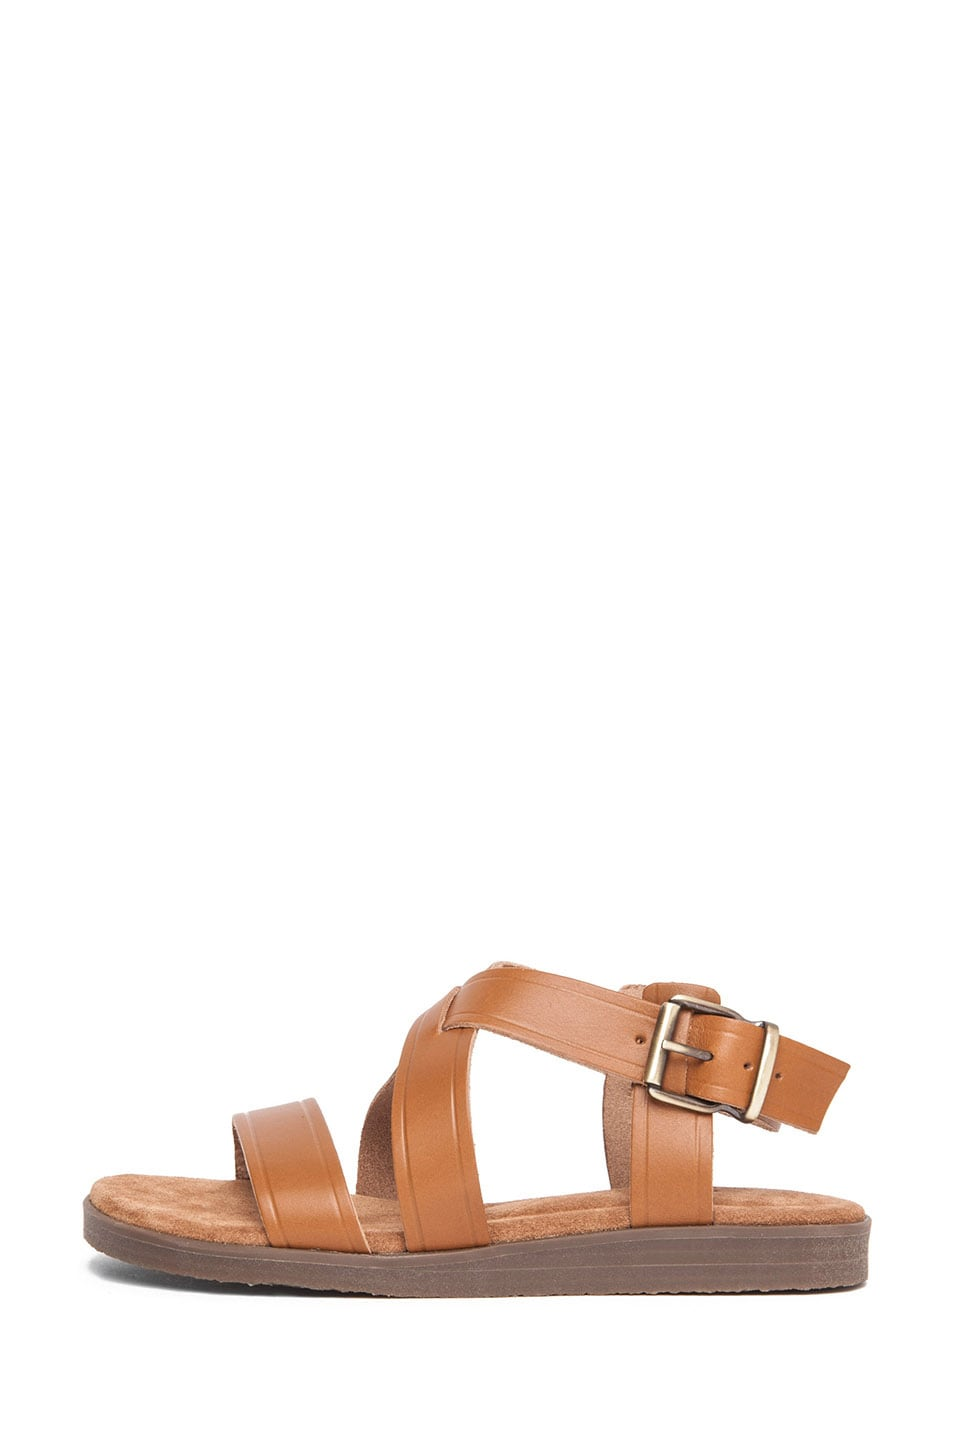 Image 1 of A.P.C. Eapis Leather Sandal in Noisette